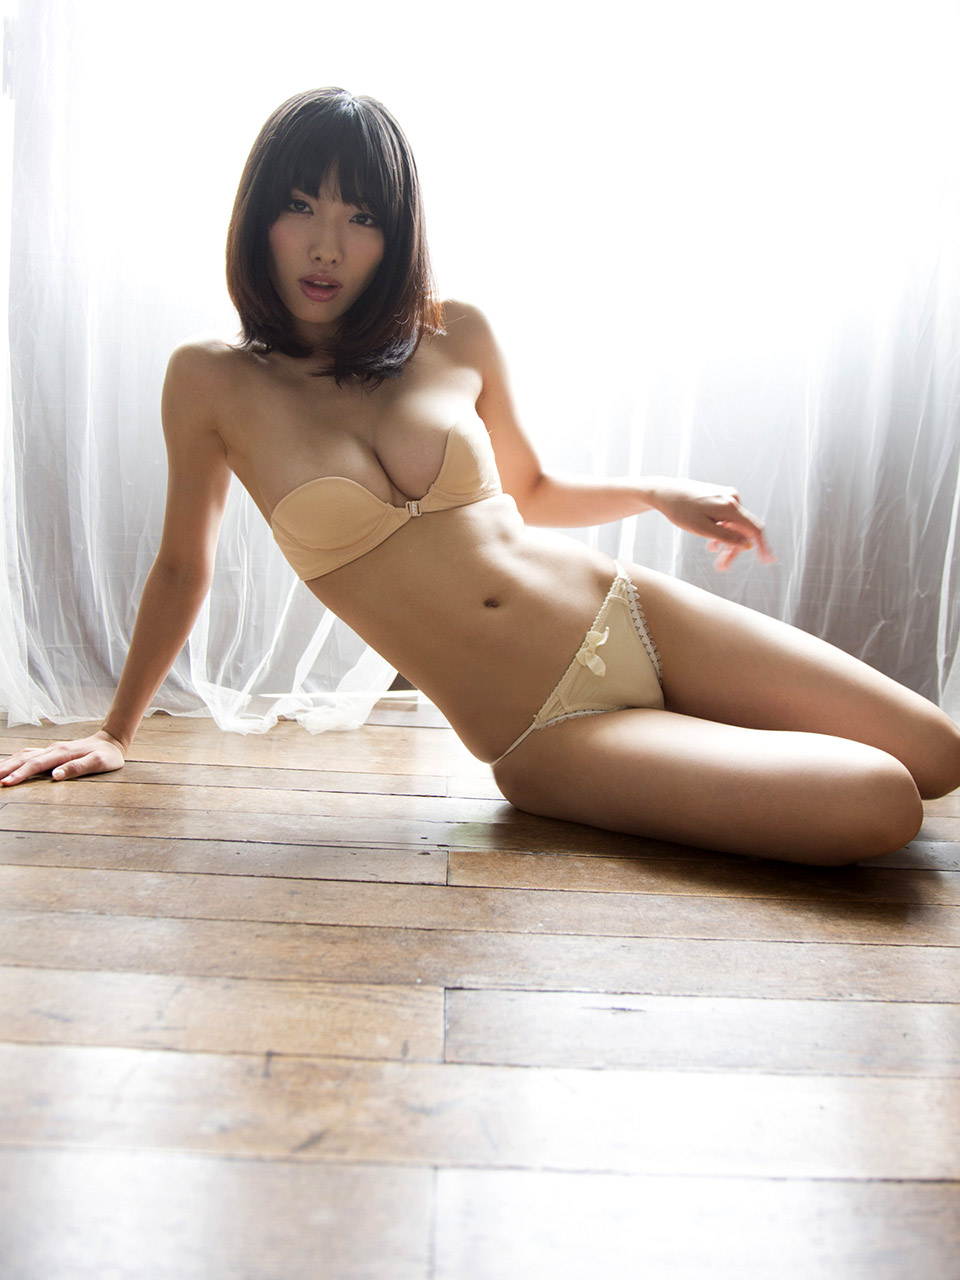 Enjoy sexy amp uncensored japanese porn videos at Japanese